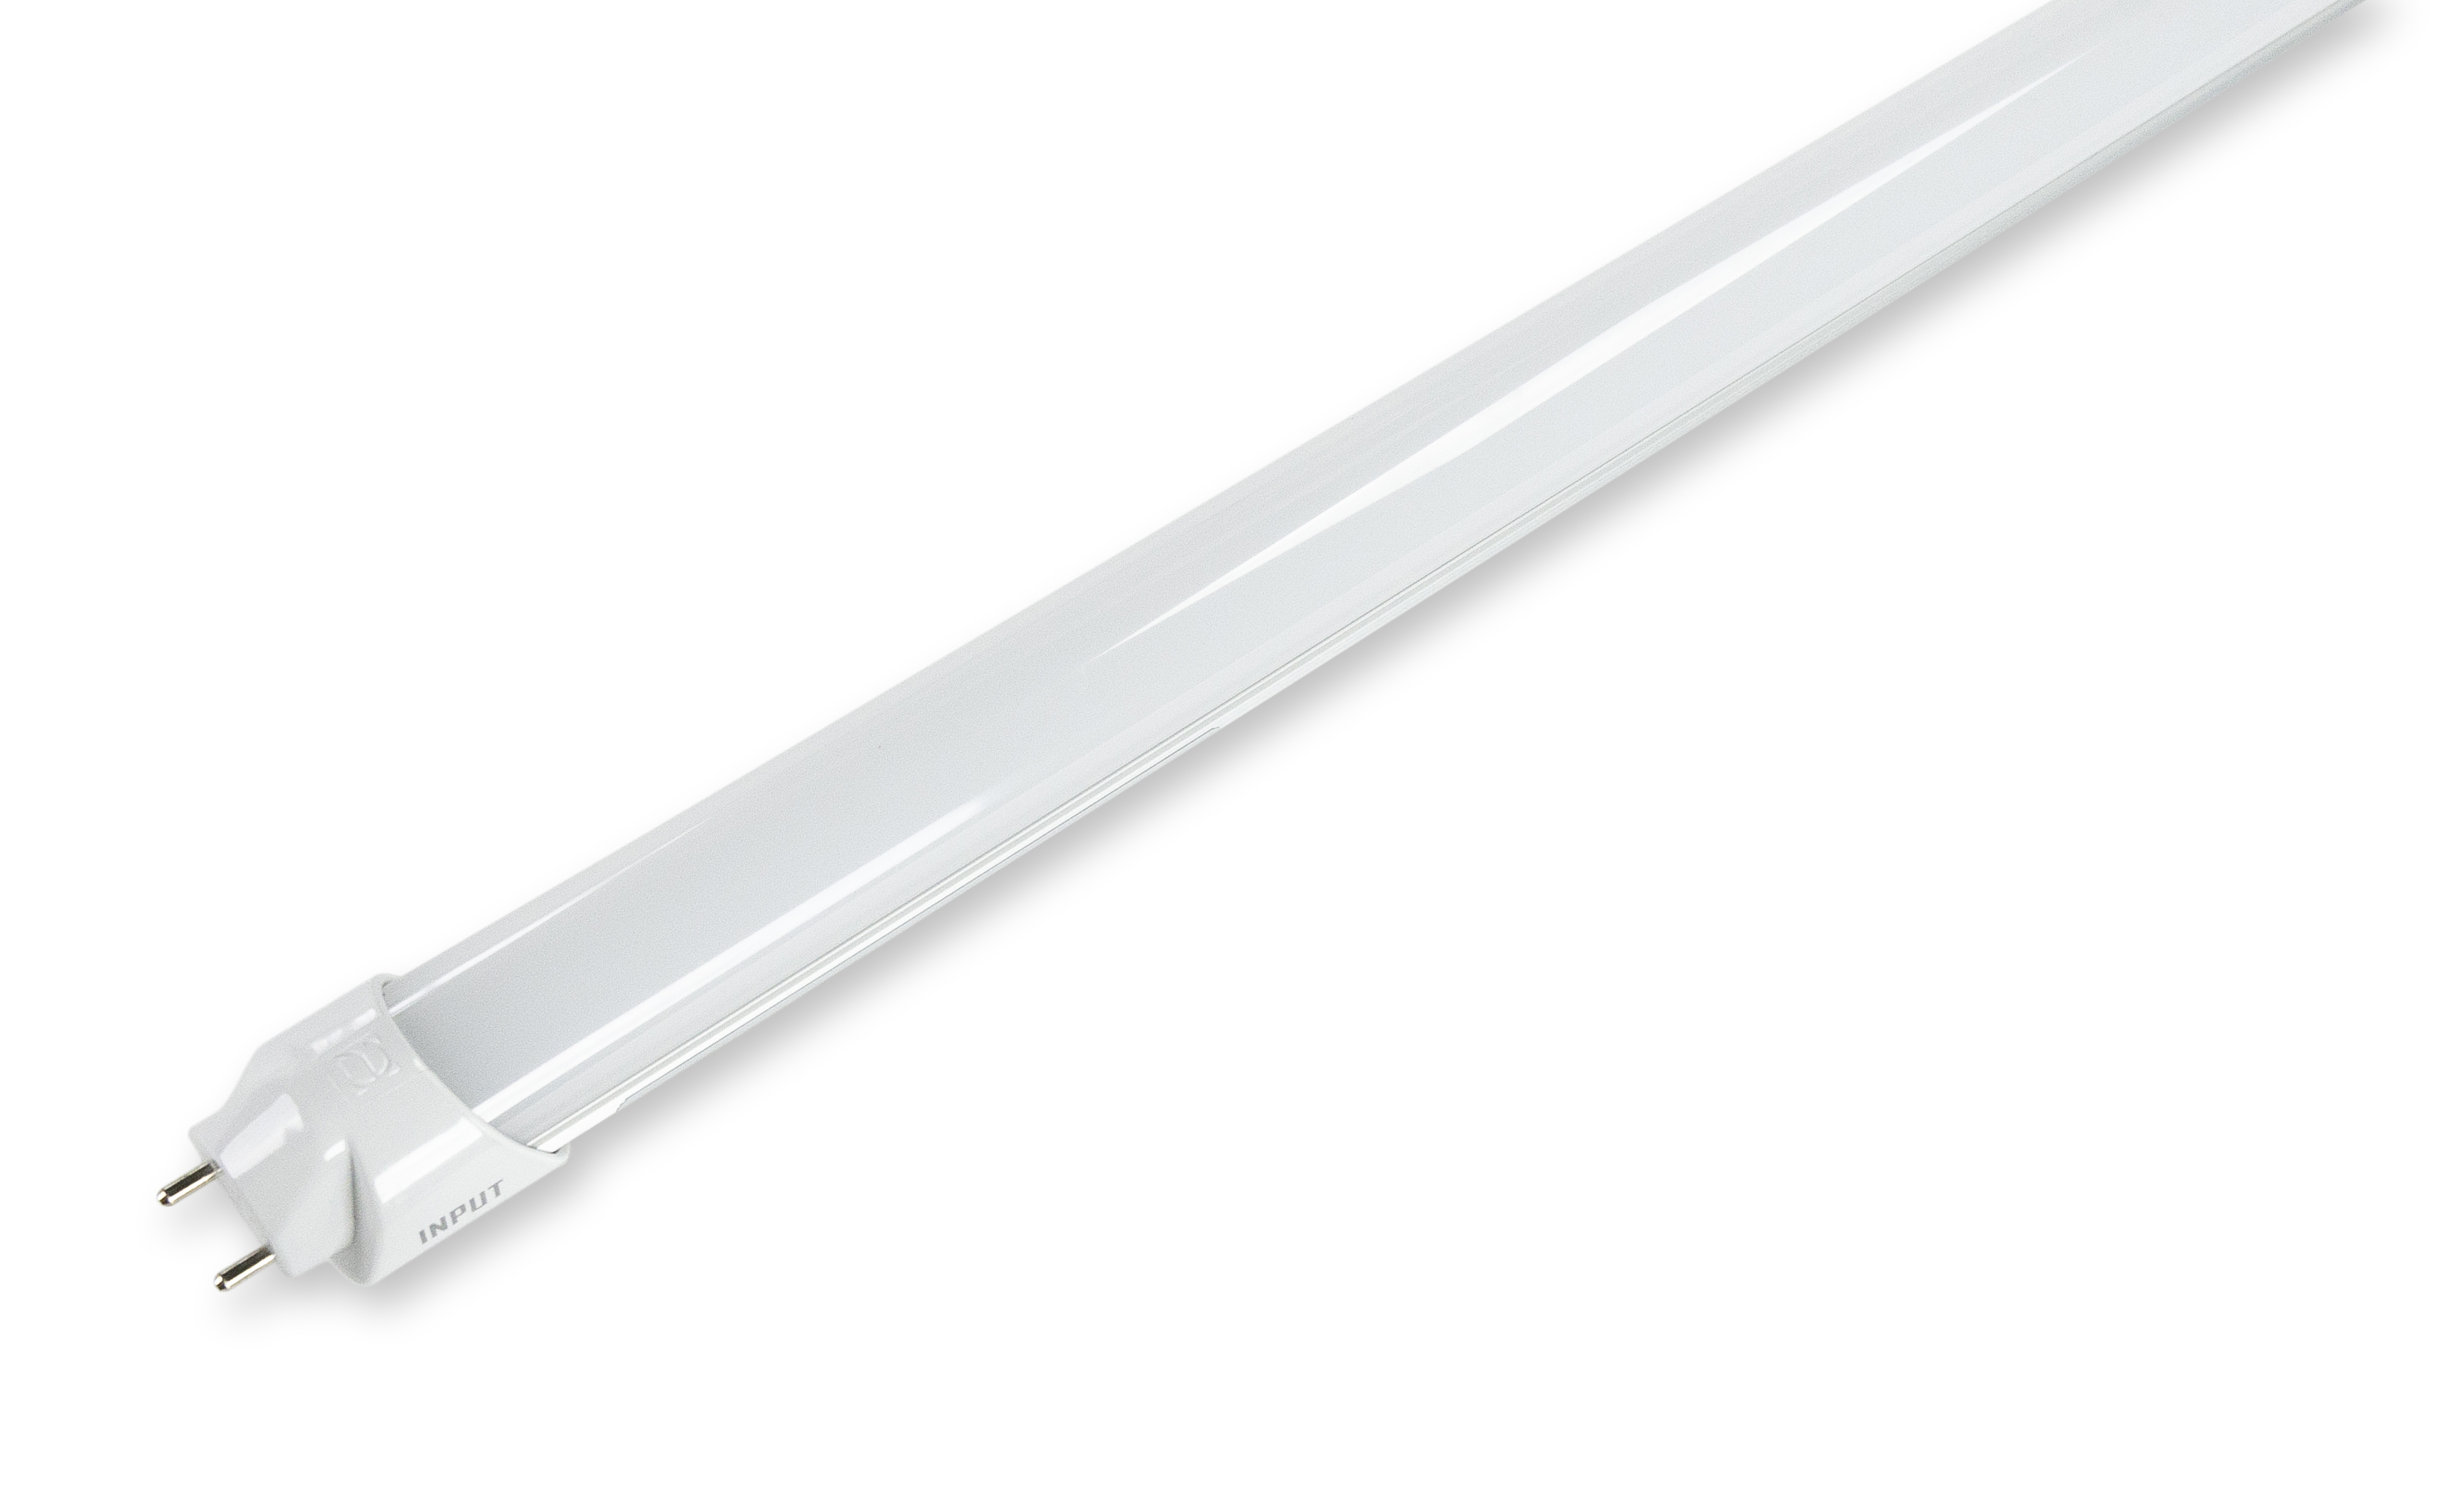 Energy Focus Double-Ended Double Bypass DEBB LED Tube Main